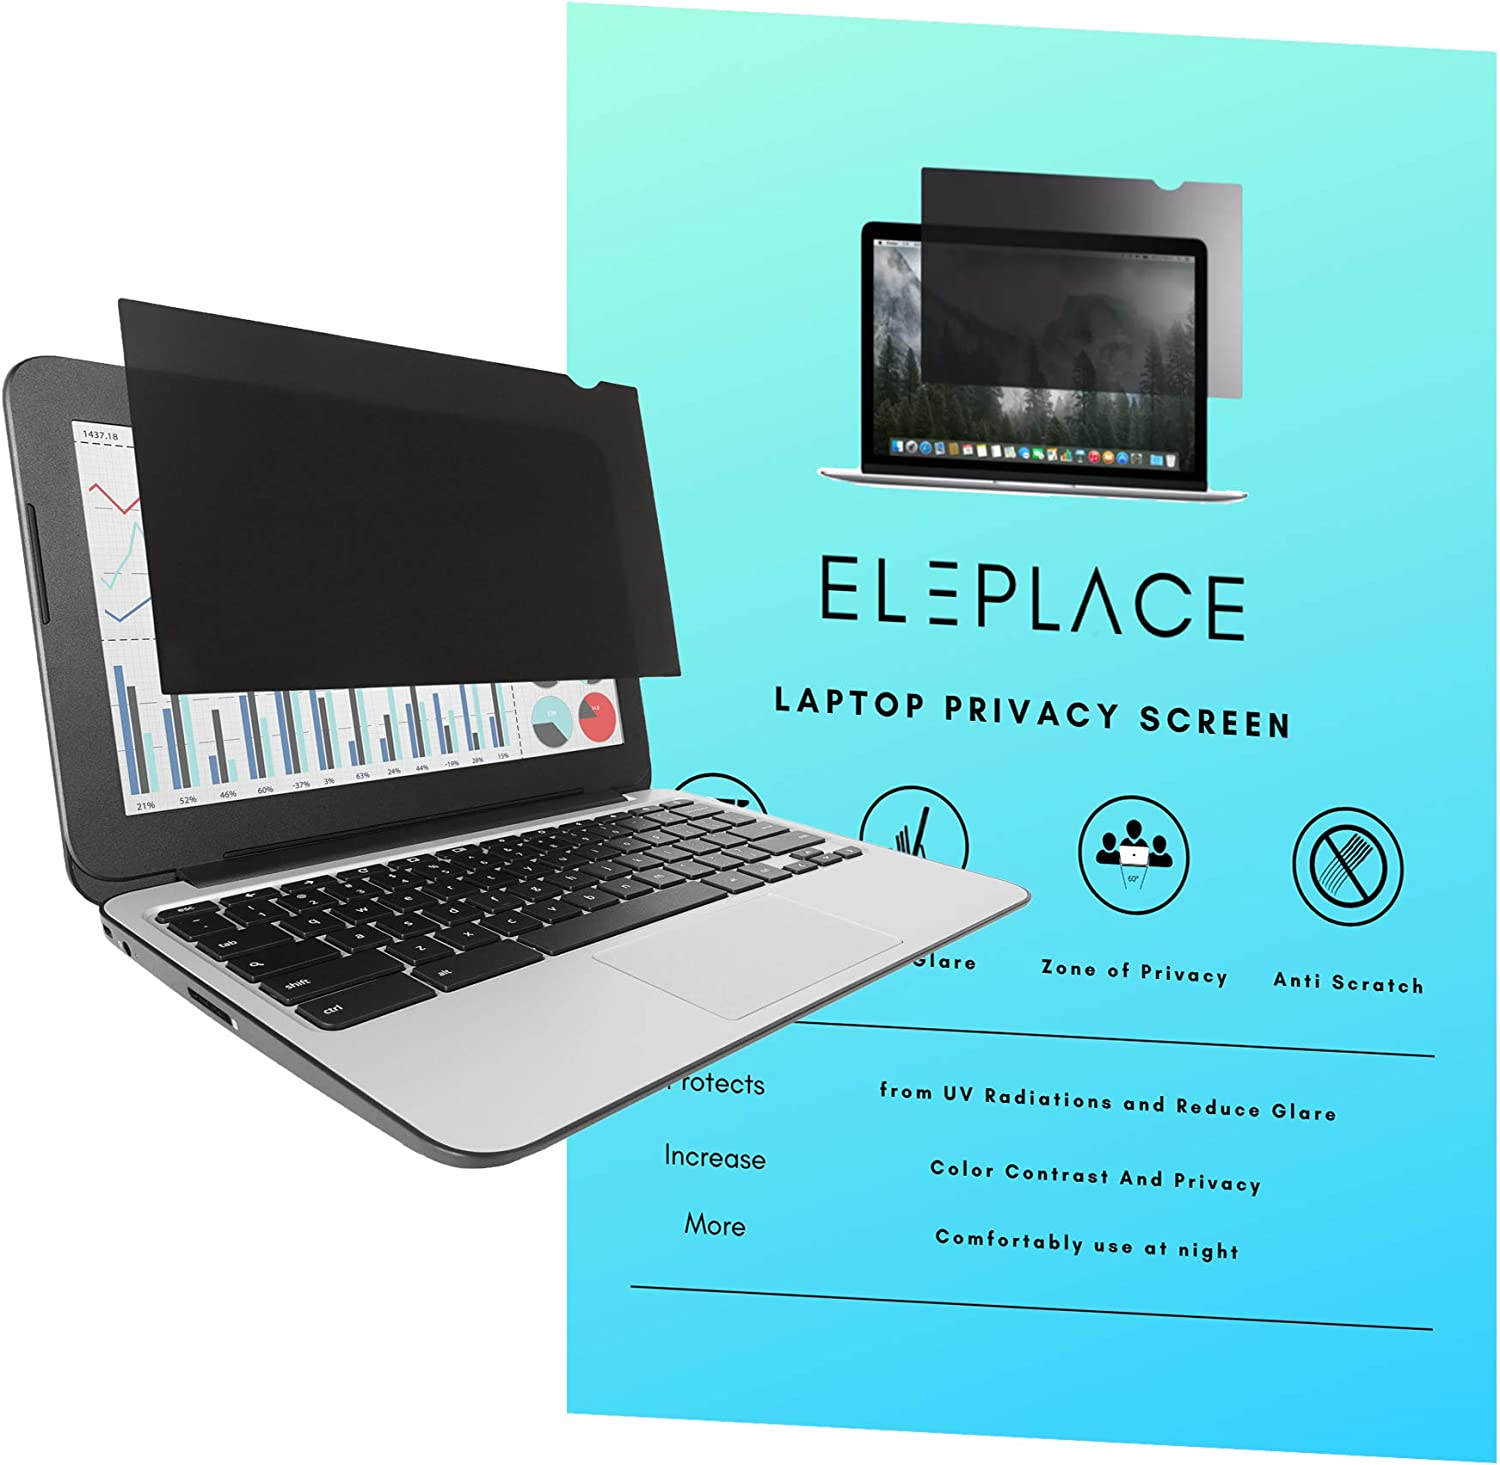 Eleplace 15.6 Inch Laptop Privacy Filter for Widescreen Display 16:9 Aspect Ratio, Anti Scratch Anti-Glare Laptop Screen Protector